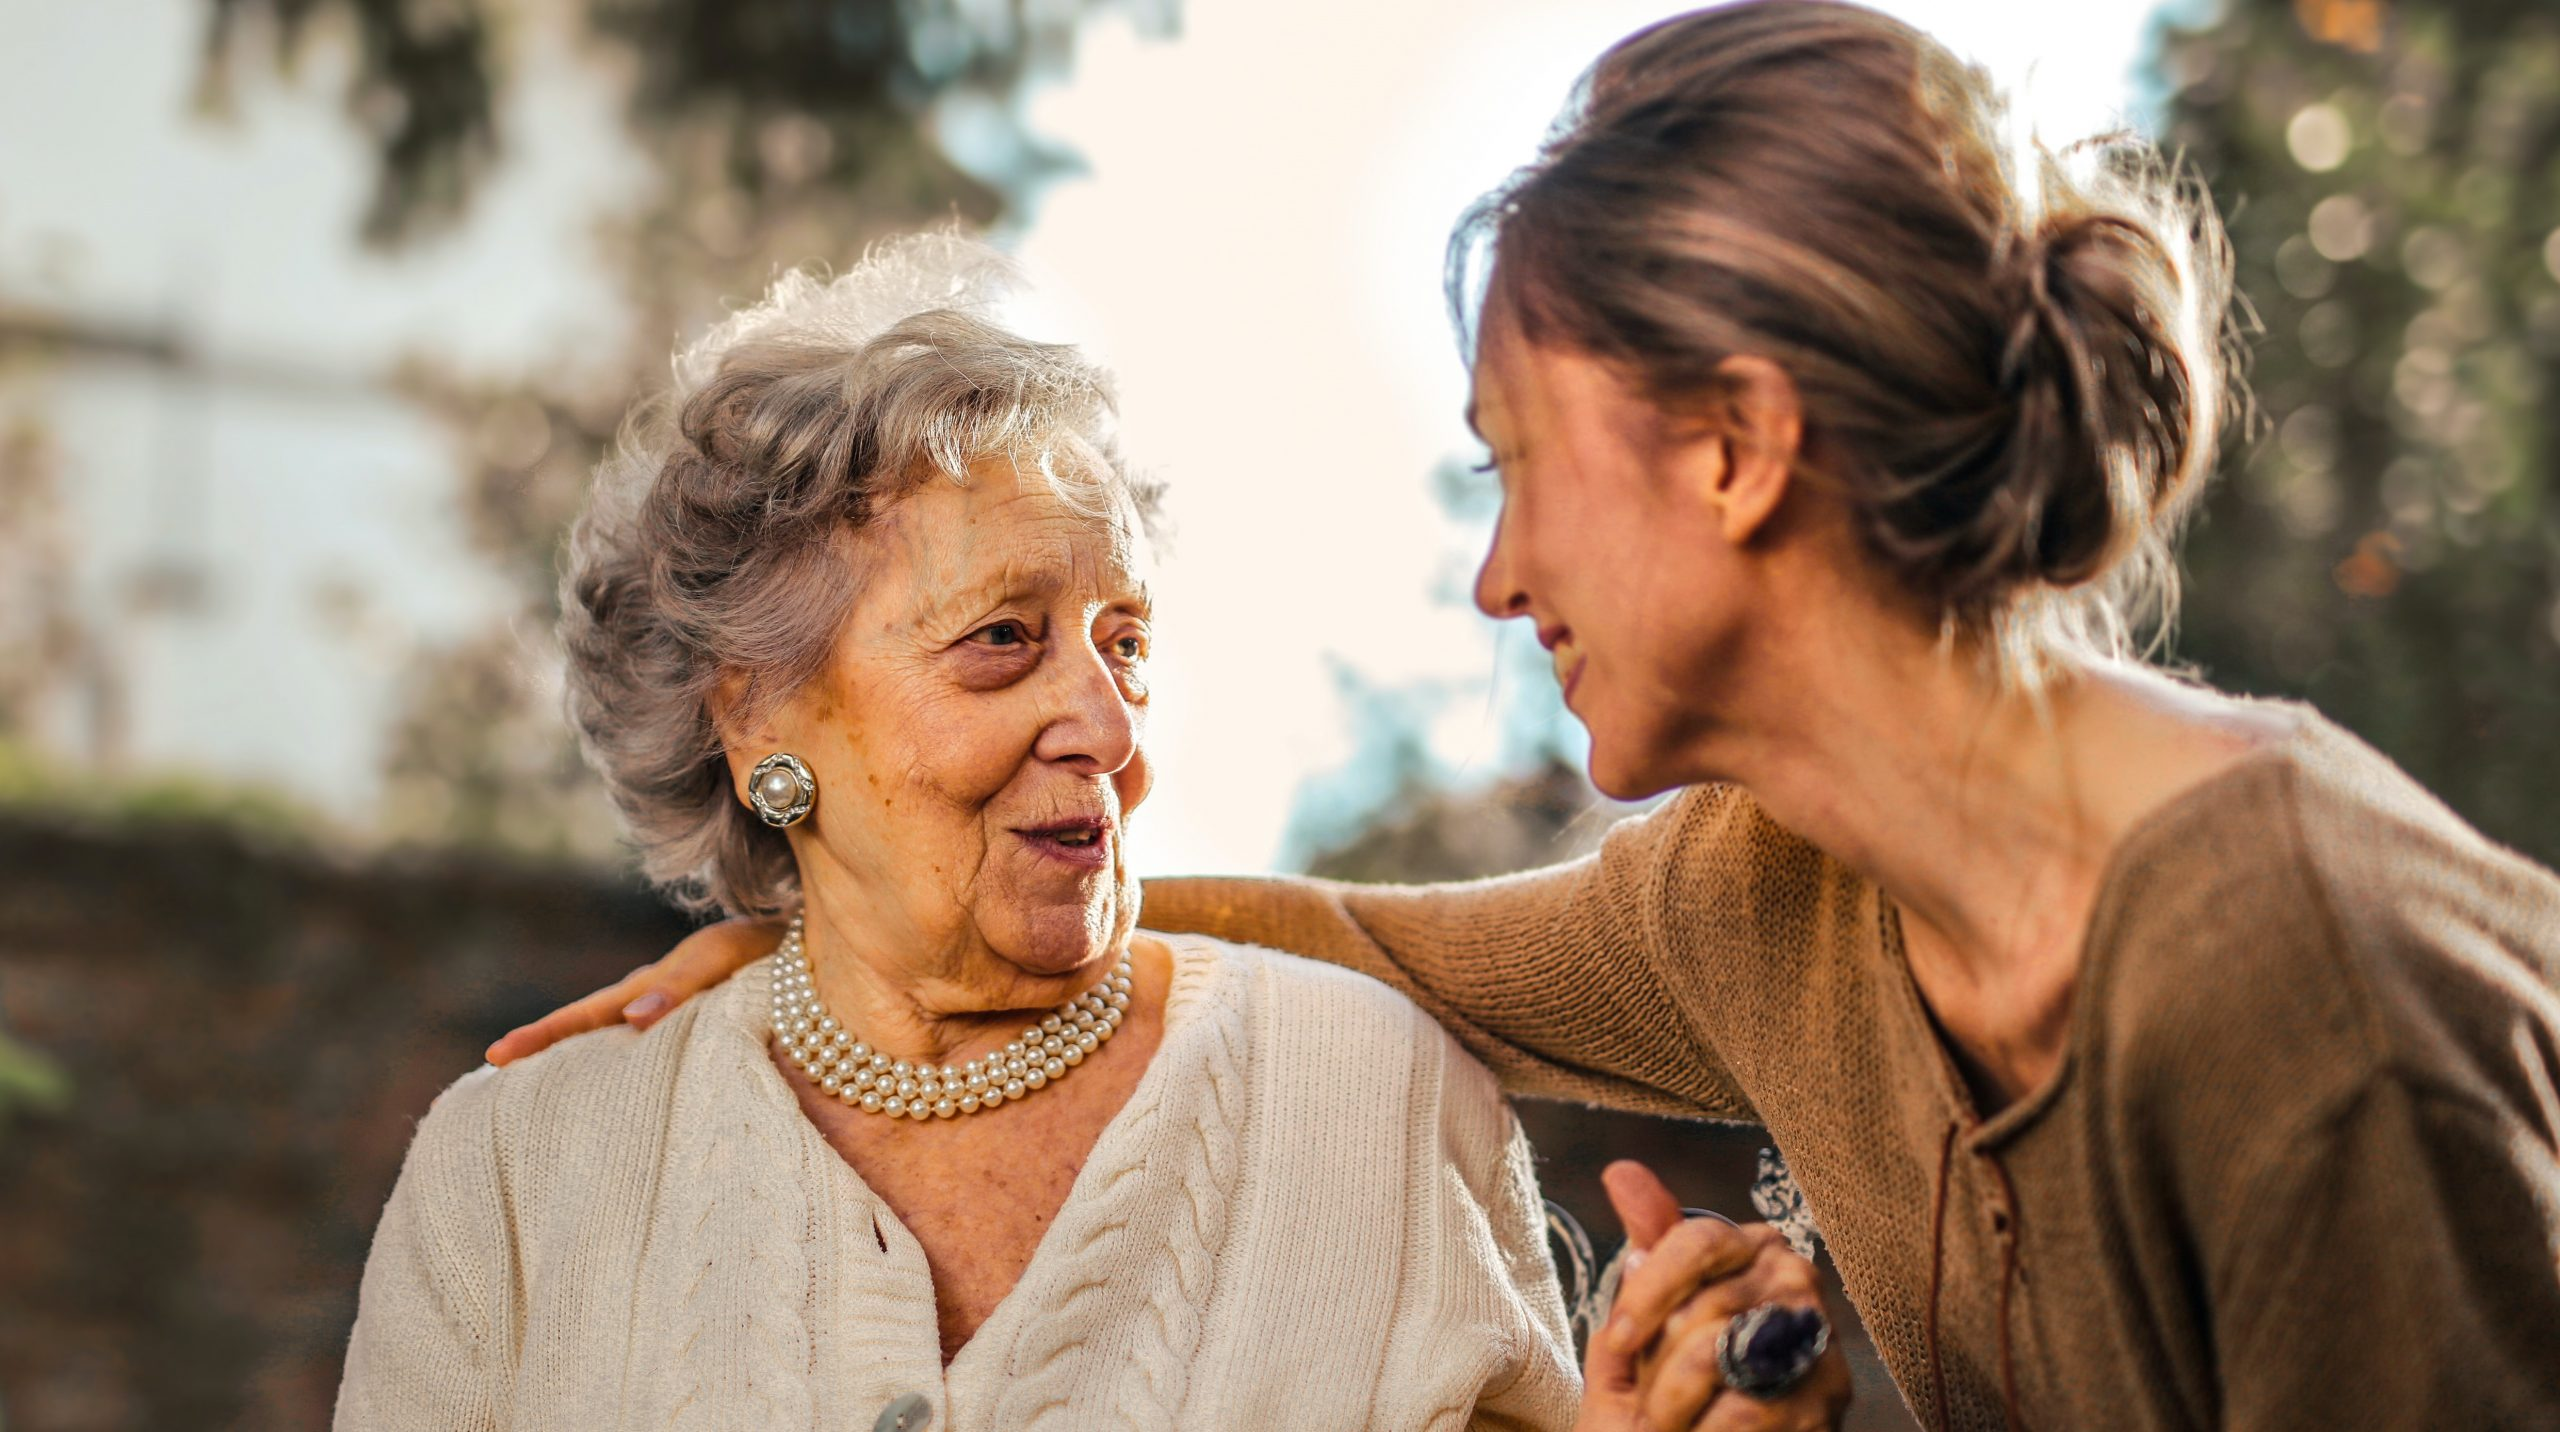 How to Have Dementia-Friendly Conversations